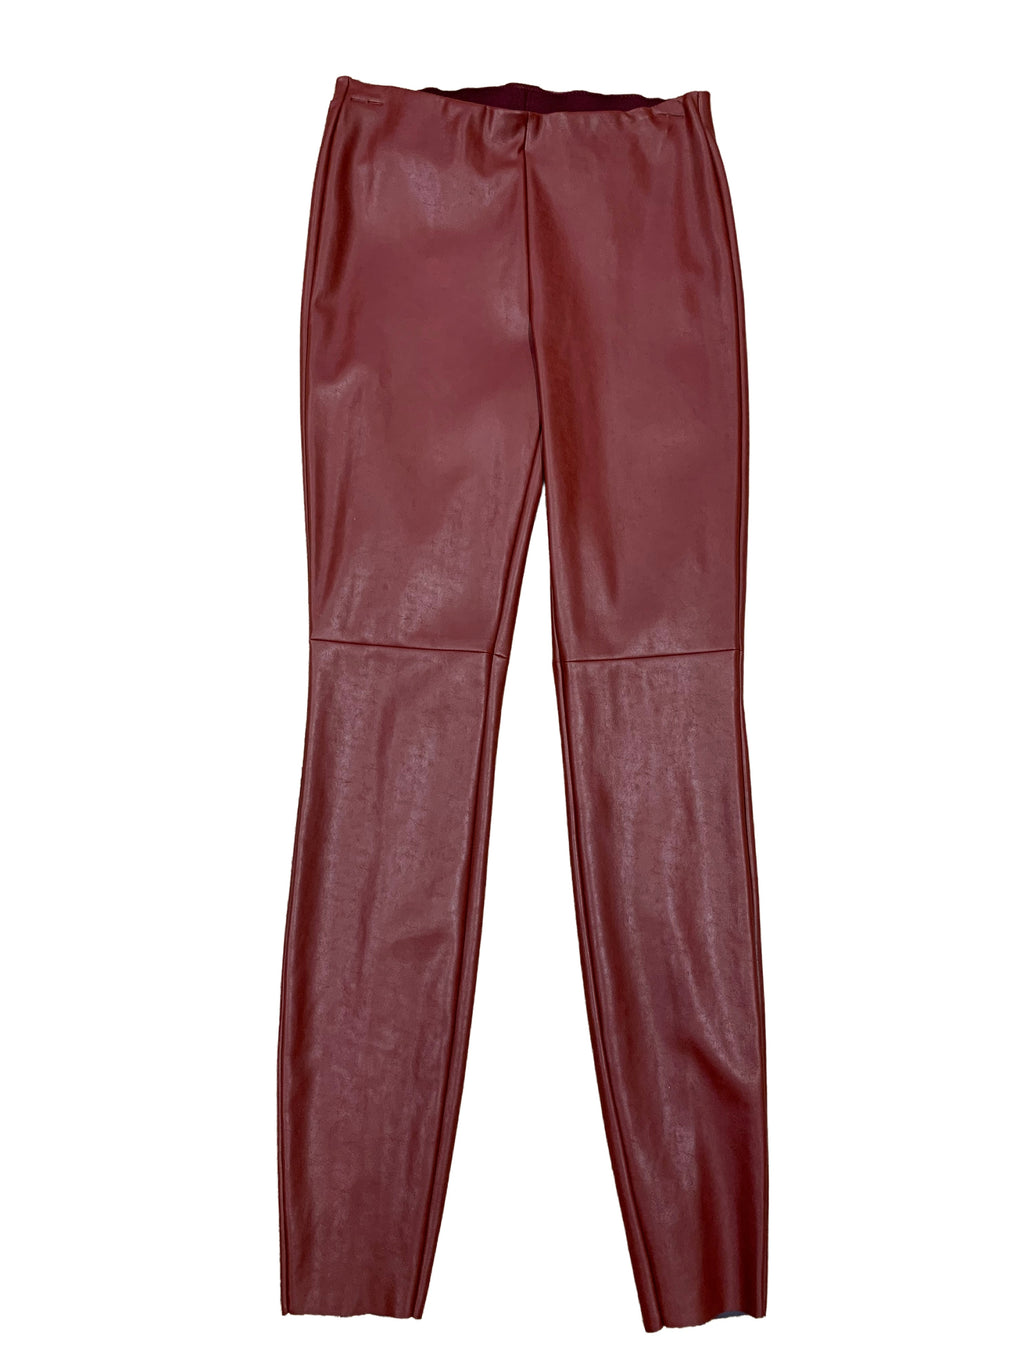 Cambio Maroon Randa Pants - Chic Thrills Boutique